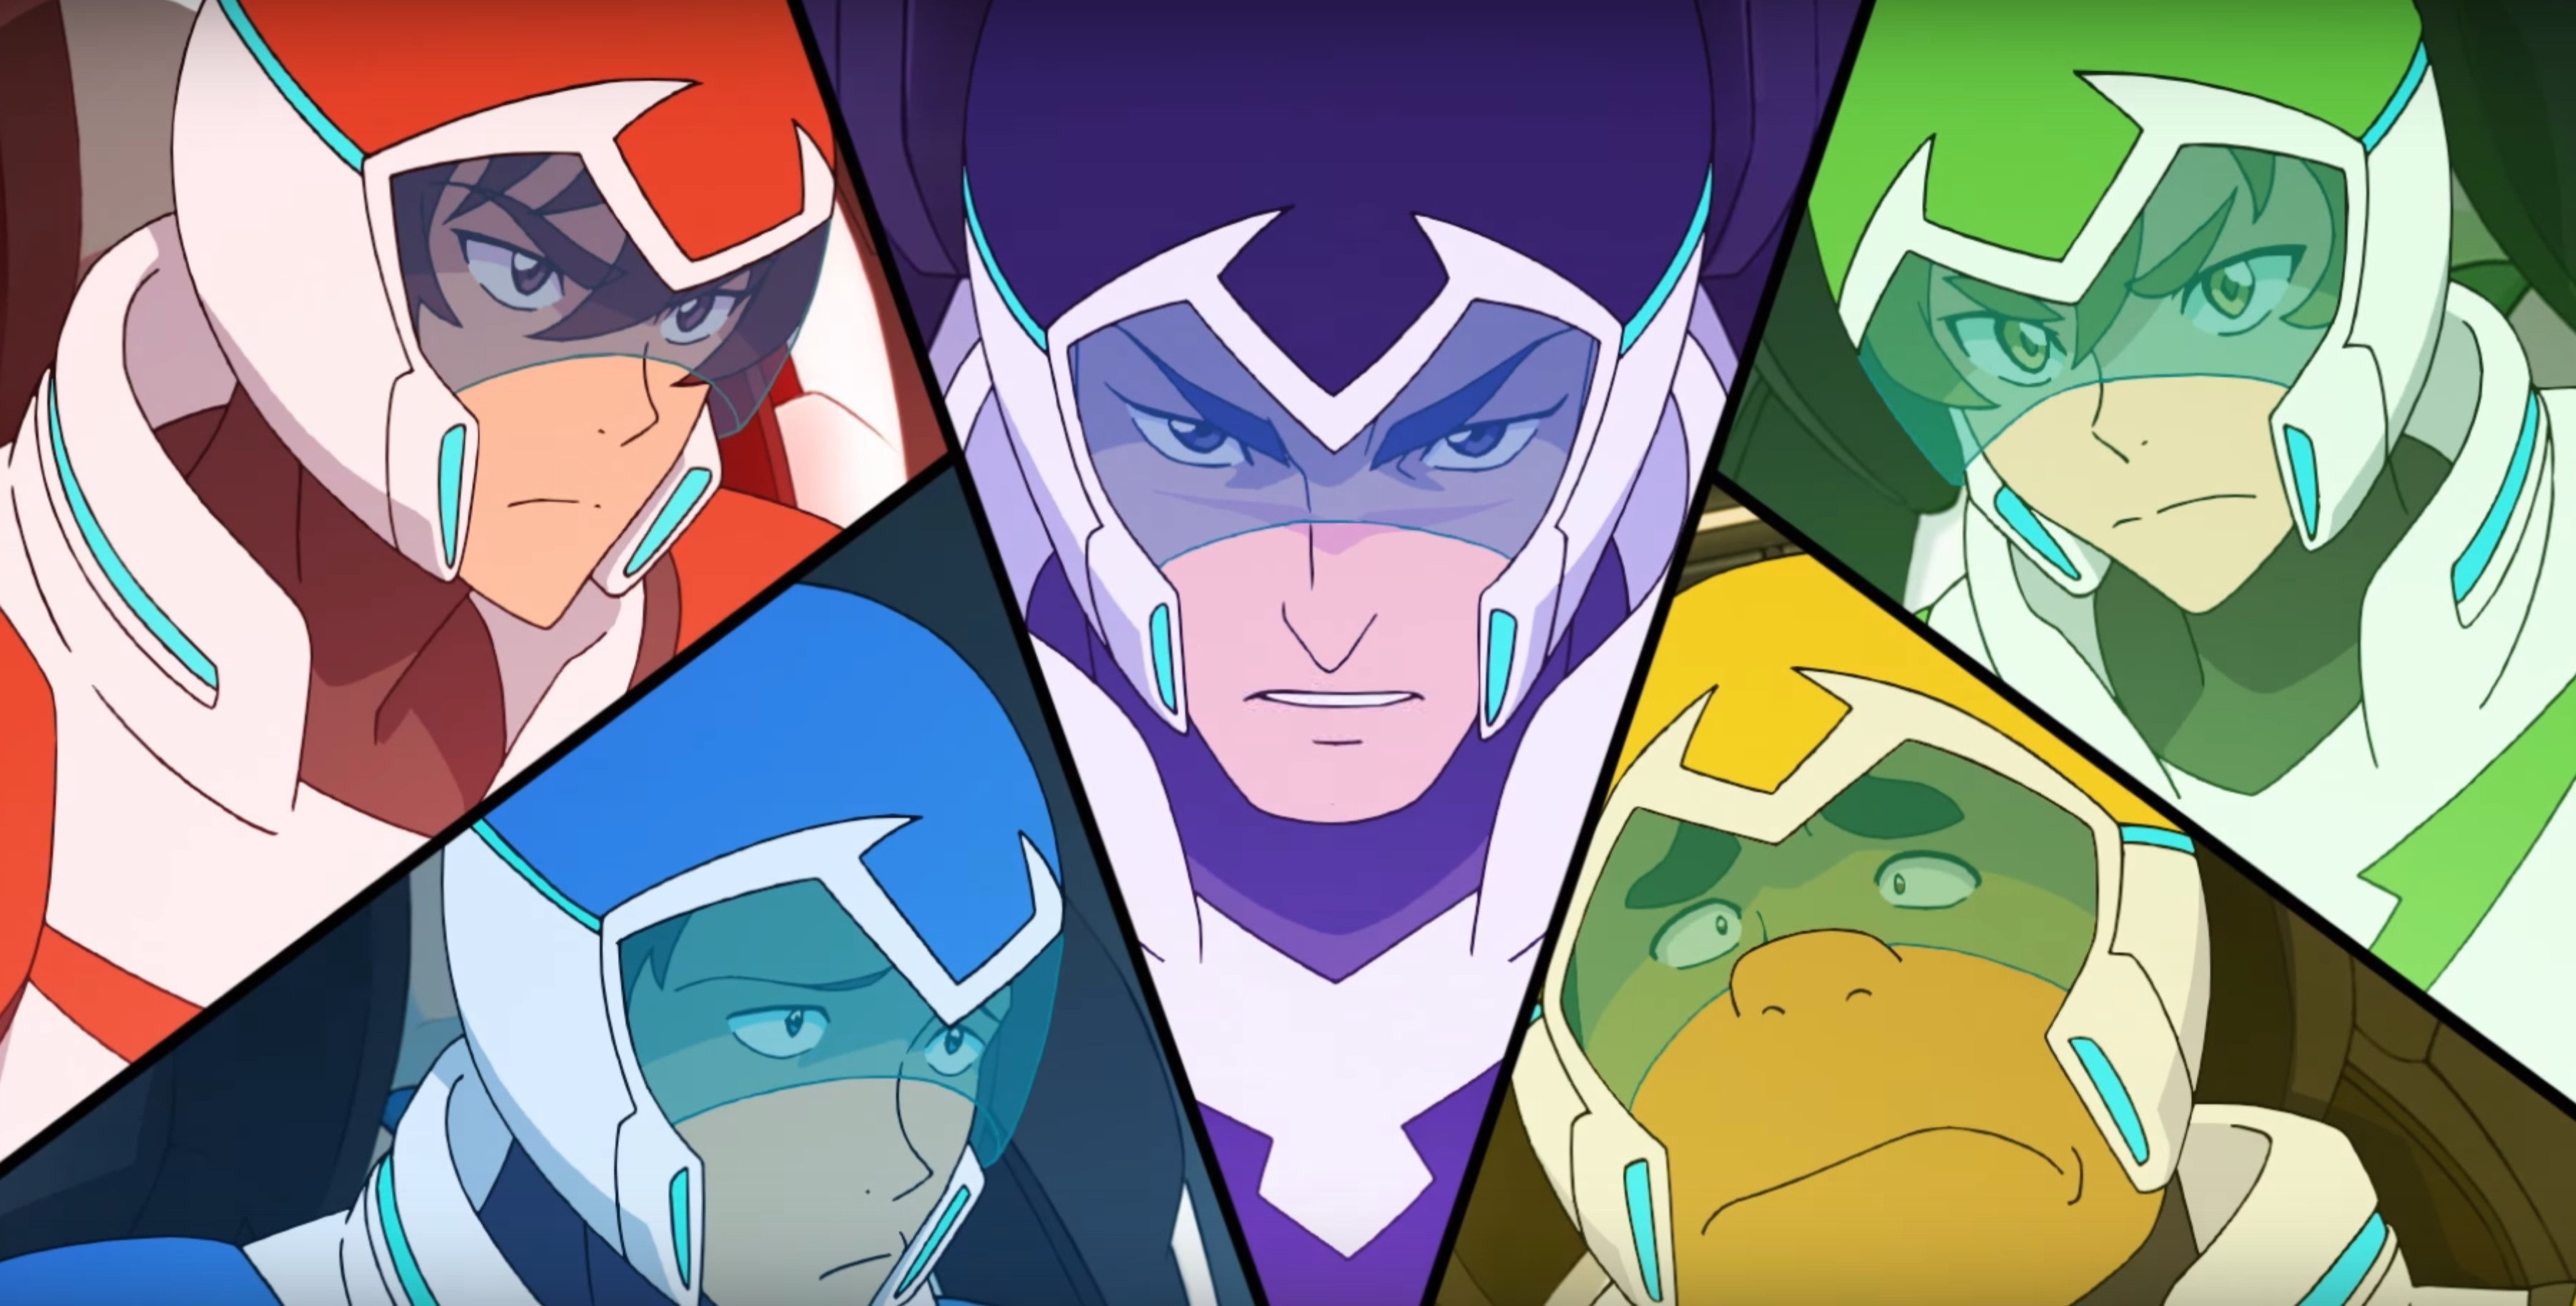 Voltron Legendary Defender' Season 2 Release Date: When will